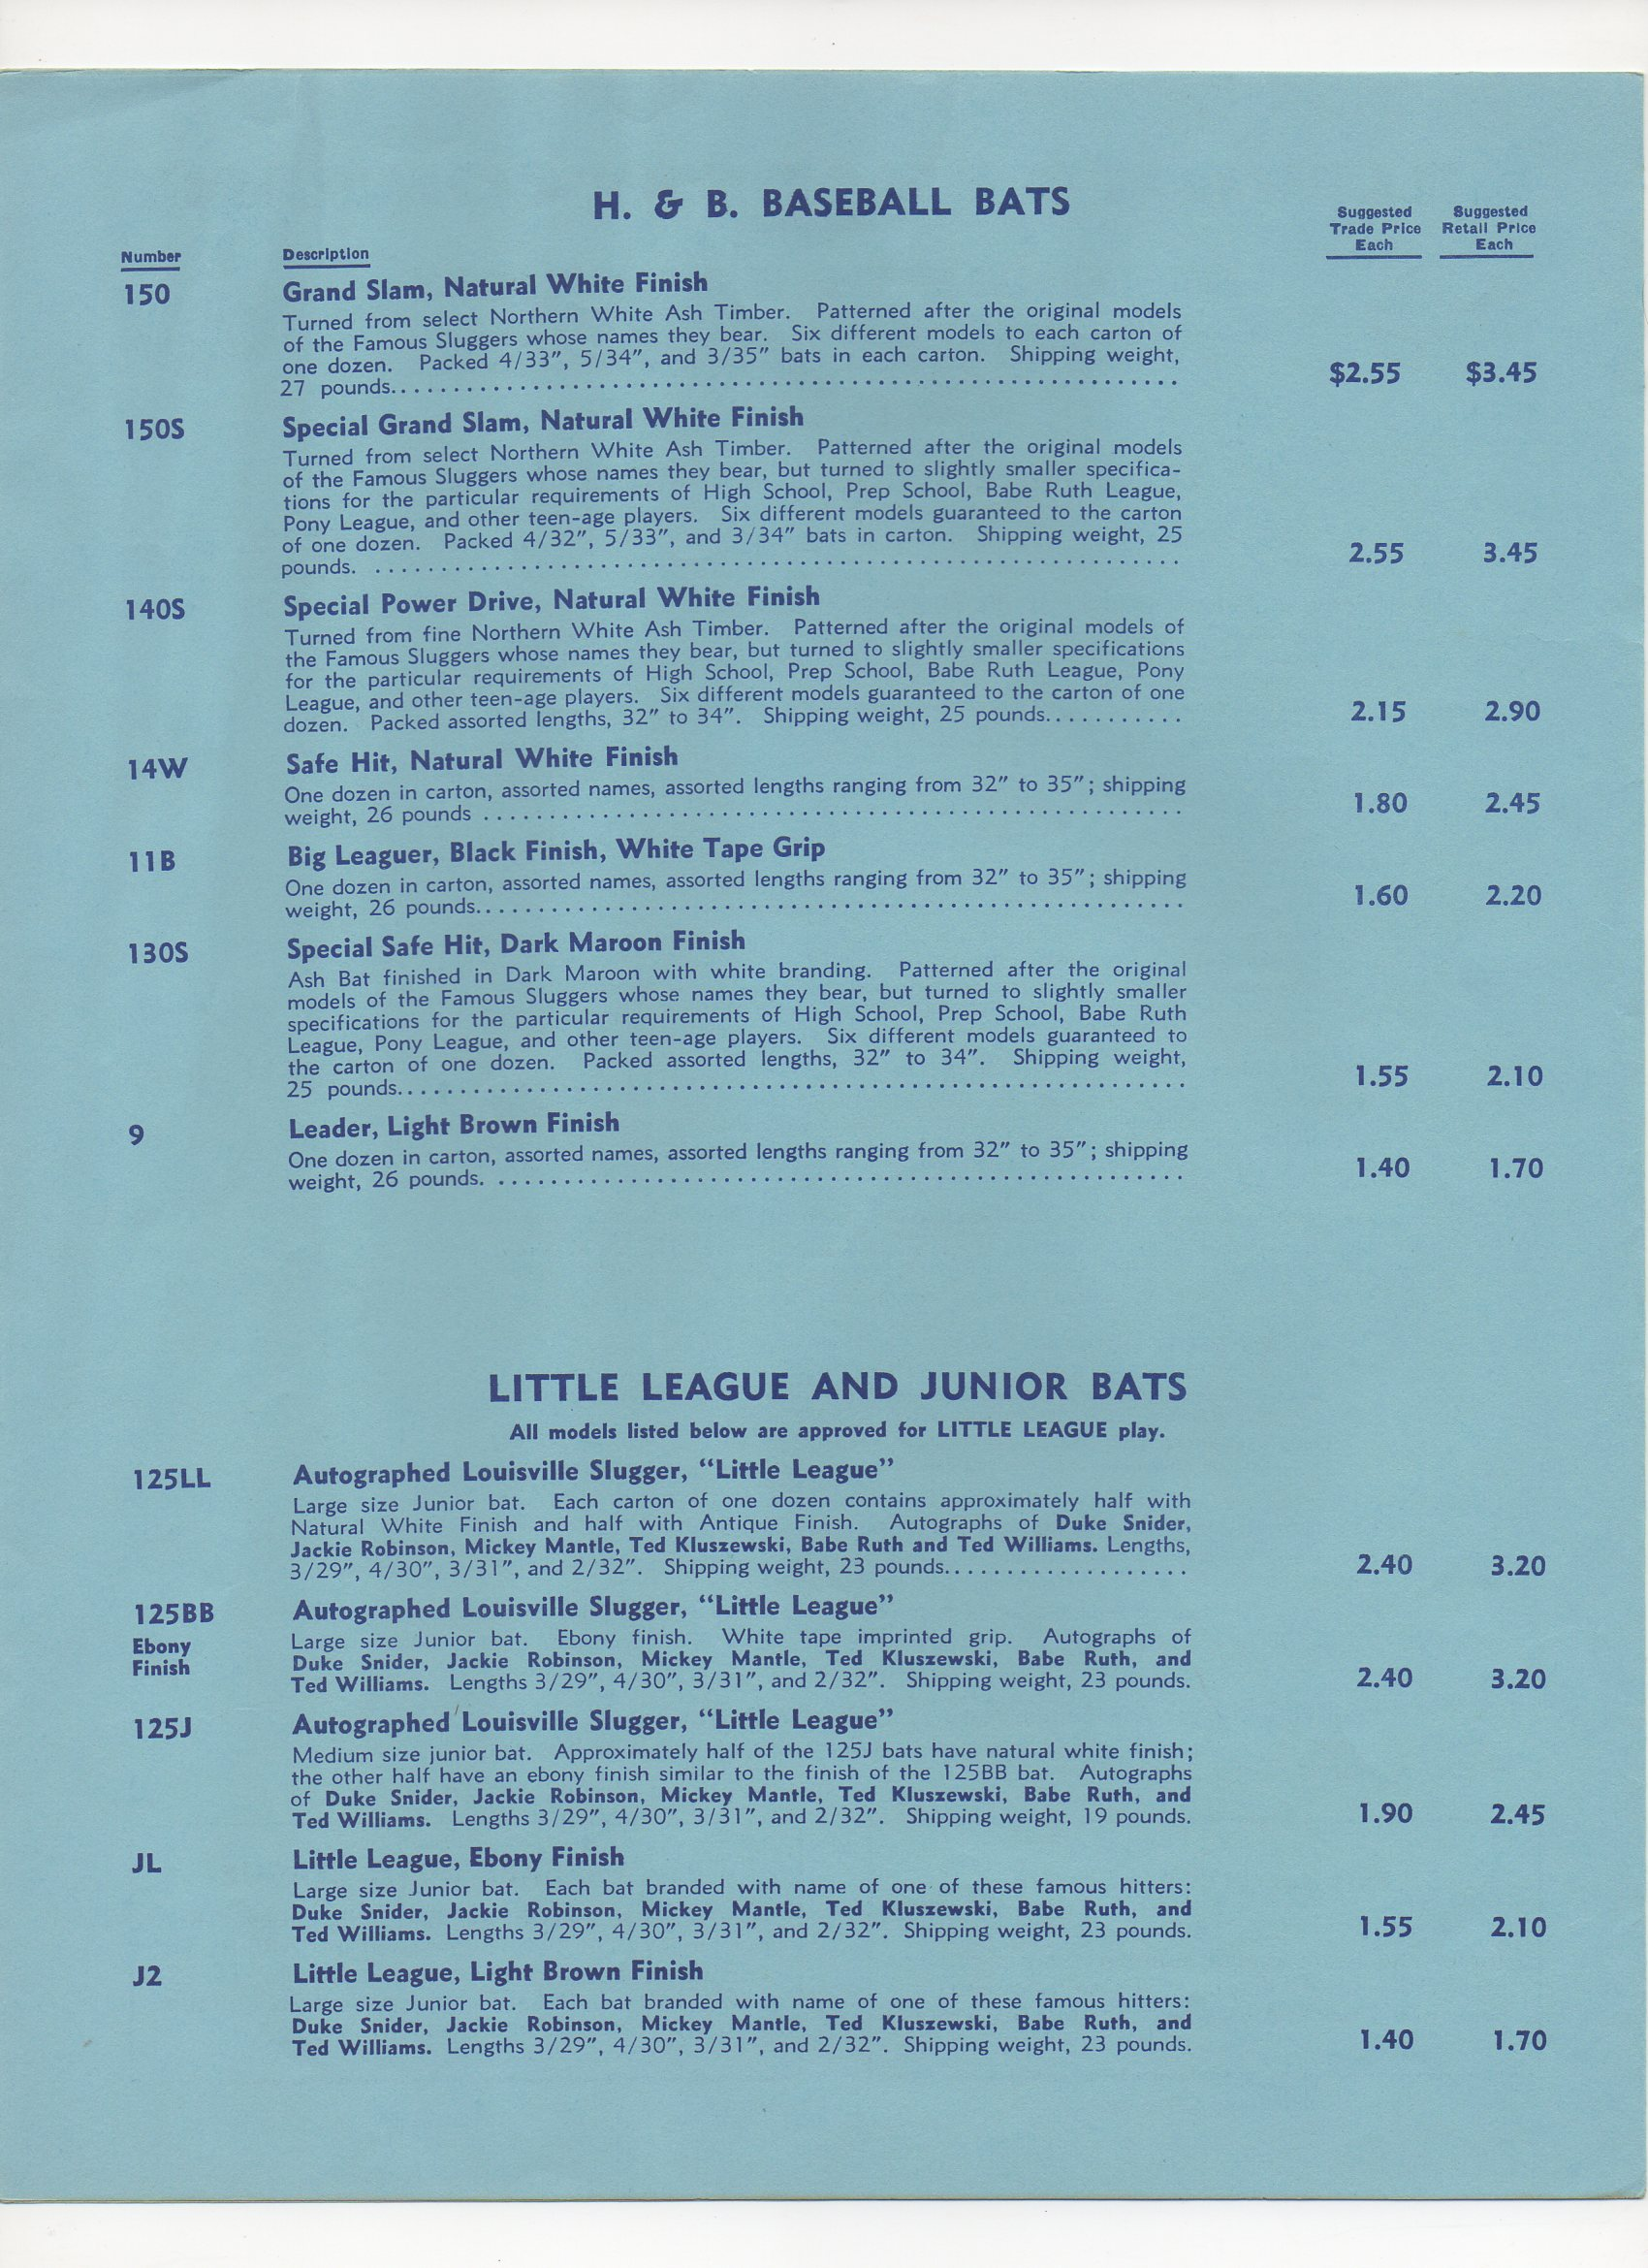 1956 bat price schedule